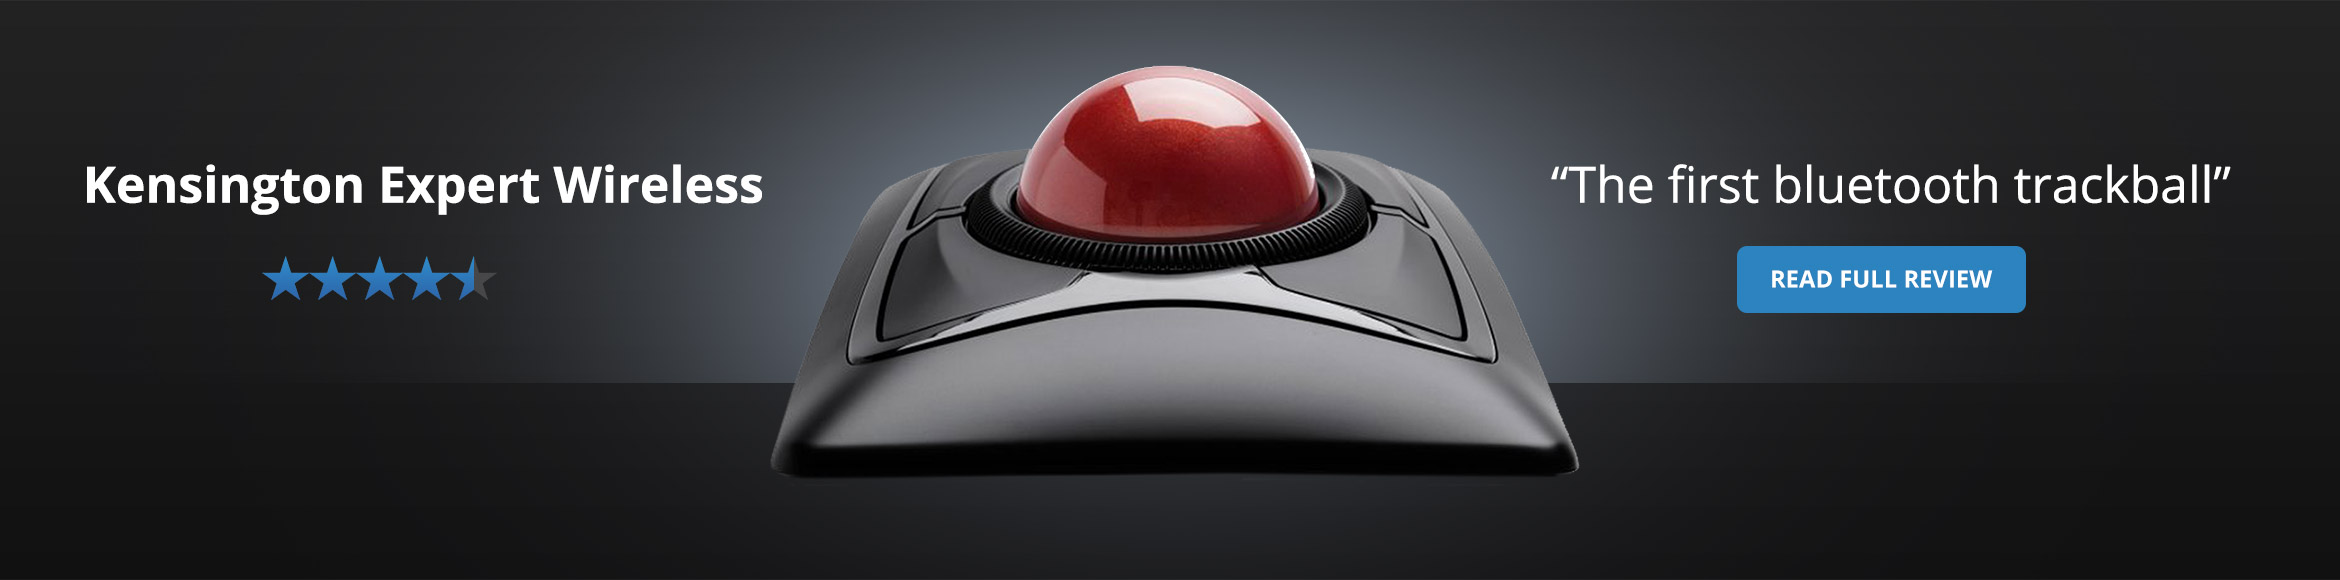 Kensington Expert Wireless Trackball